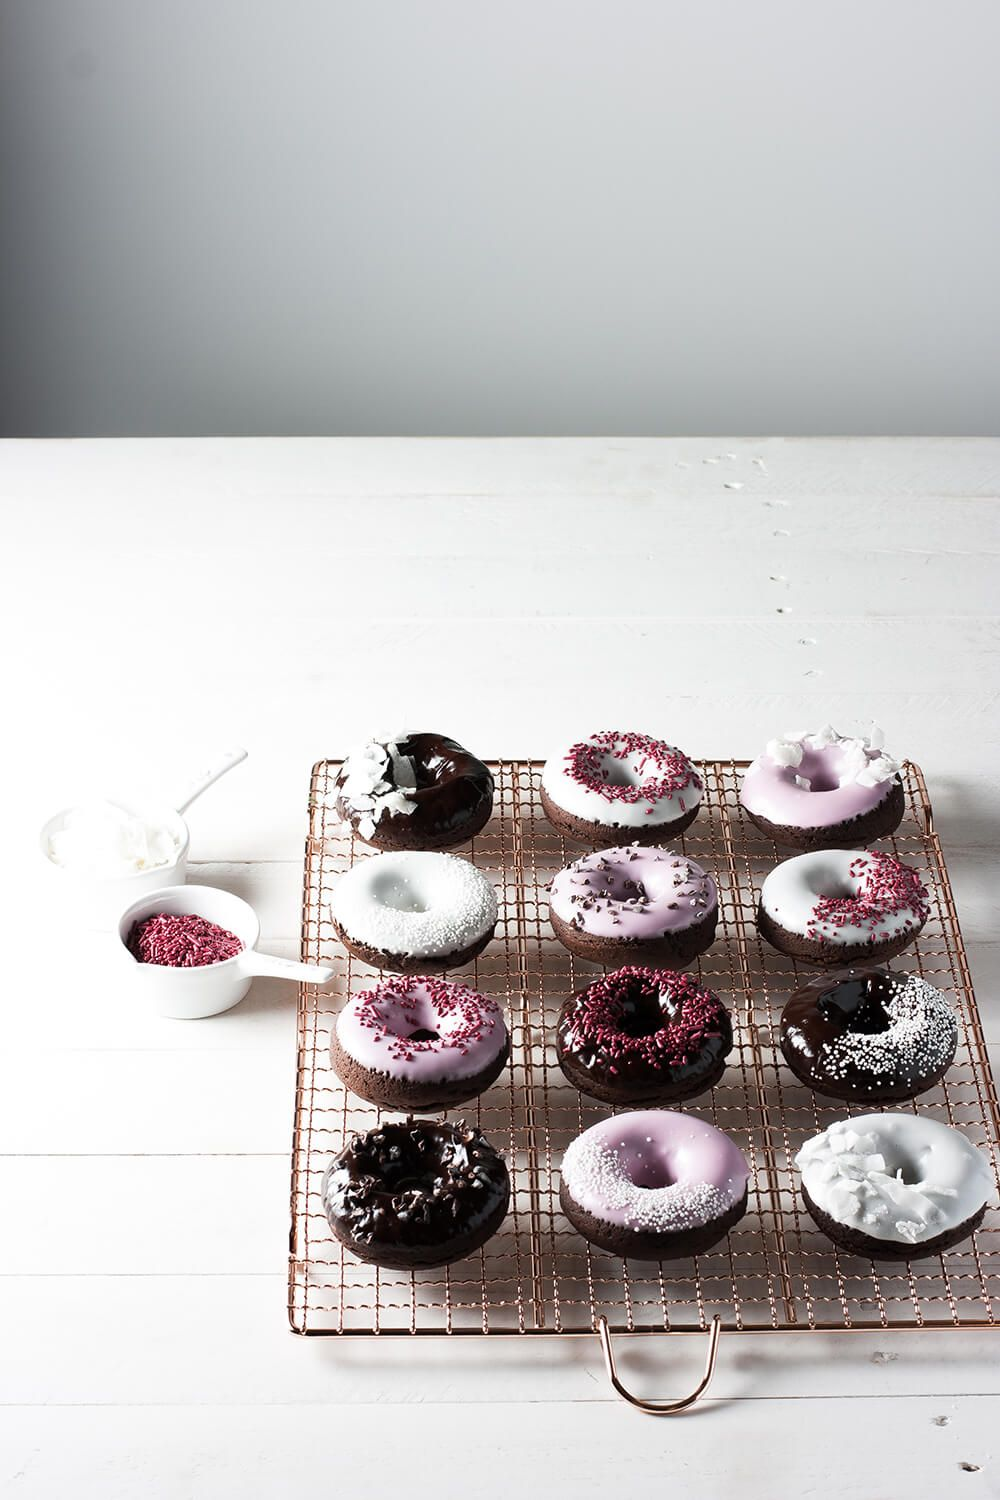 Chocolate cake doughnuts rich in flavor and full of fun! Dipped in all-natural pink glaze, topped with all-natural sprinkles, coconut flakes & cacao nibs.